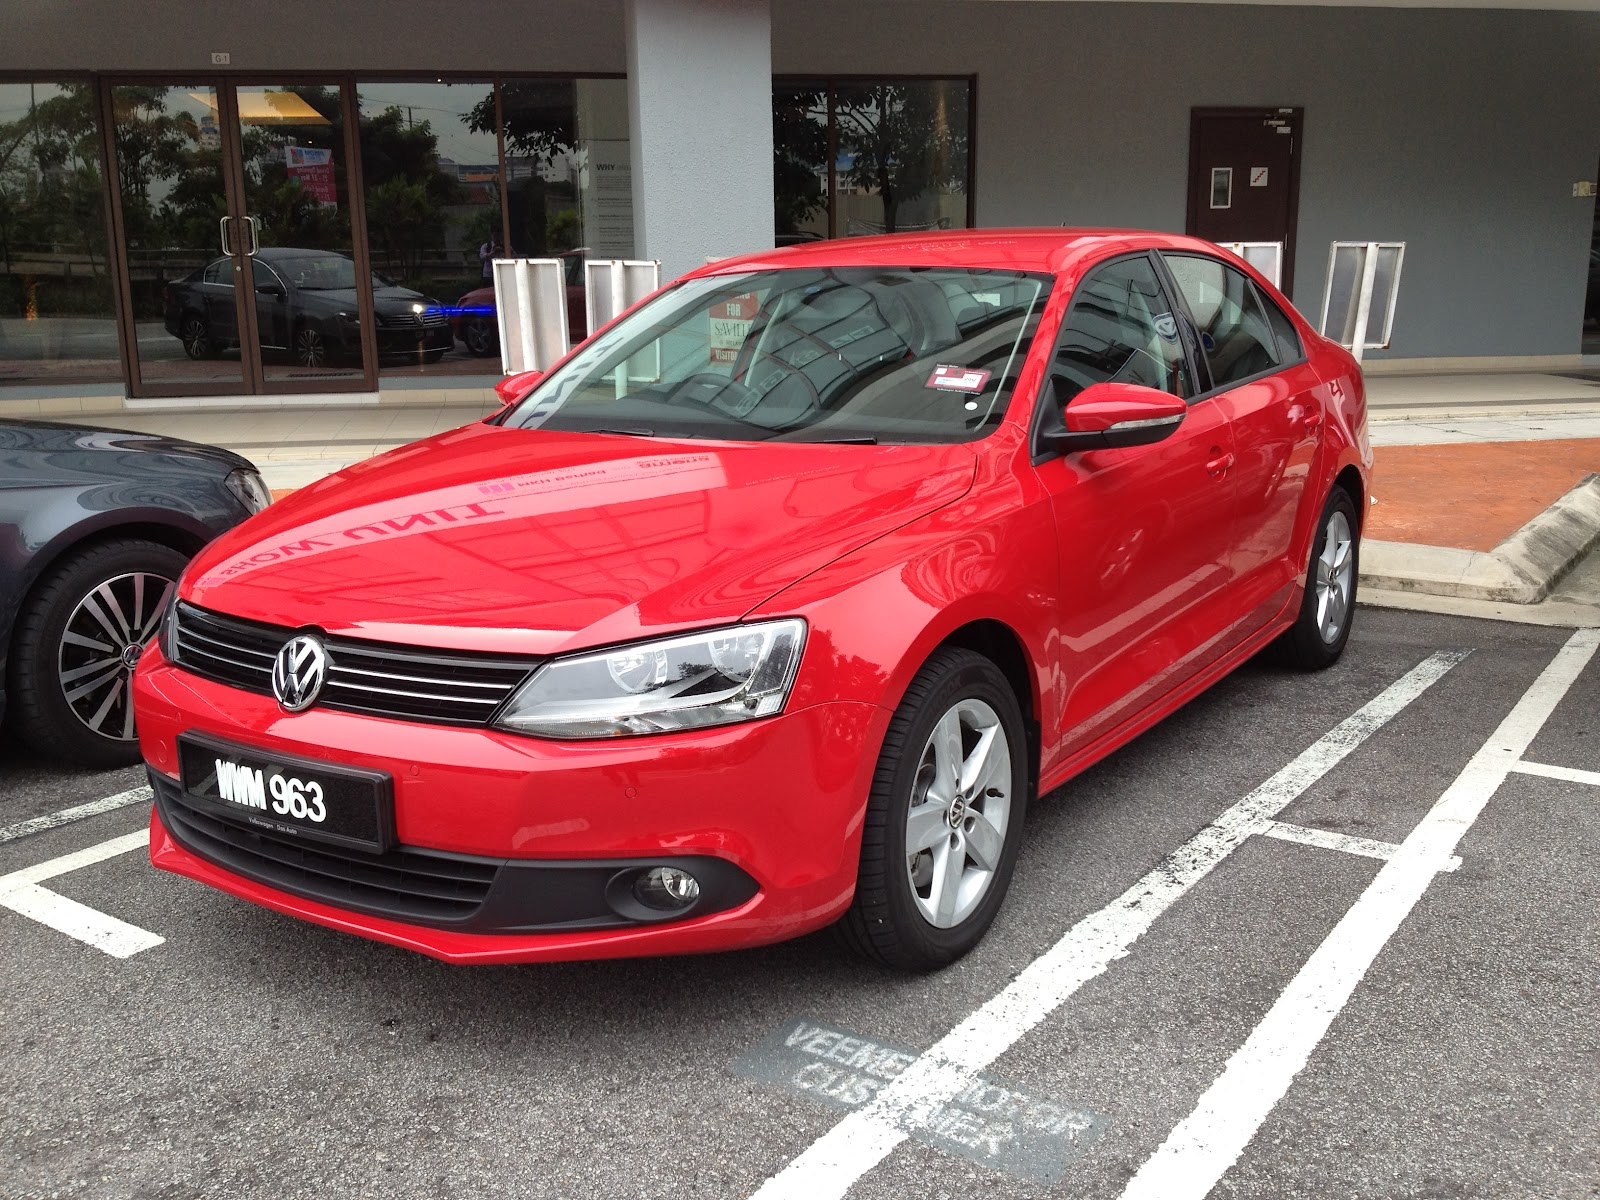 The Volkswagen Jetta A Price Class Above Kensomuse Sonic 150r Honda Racing Red Solo